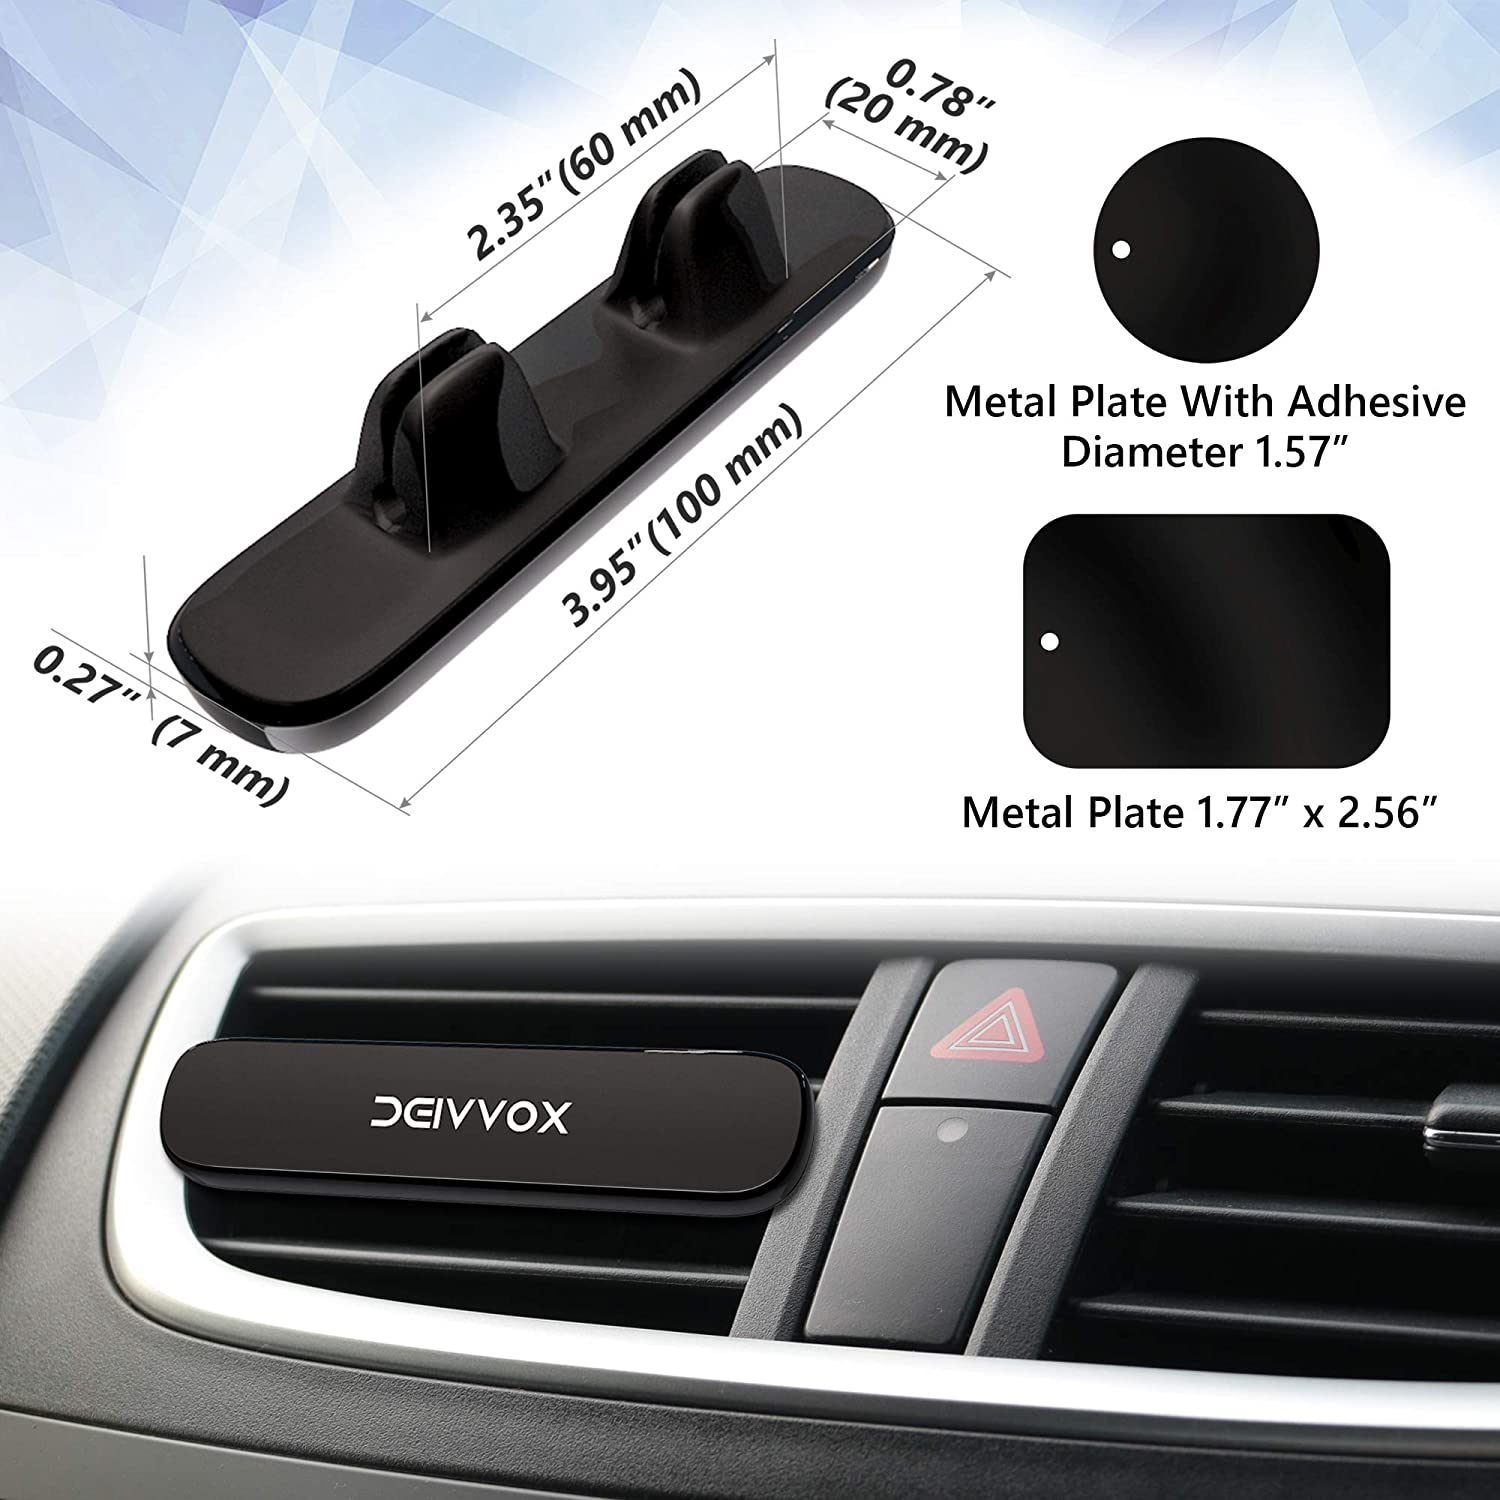 Best car Accessories Interior D0118 Car Phone Mount Car Holder Compatible iPhone Xs XR XS MAX X 8 Plus 7 Samsung Galaxy S9 S8 Magnetic Phone car Mount Cell Phone Holder for car air Vent by Deivvox